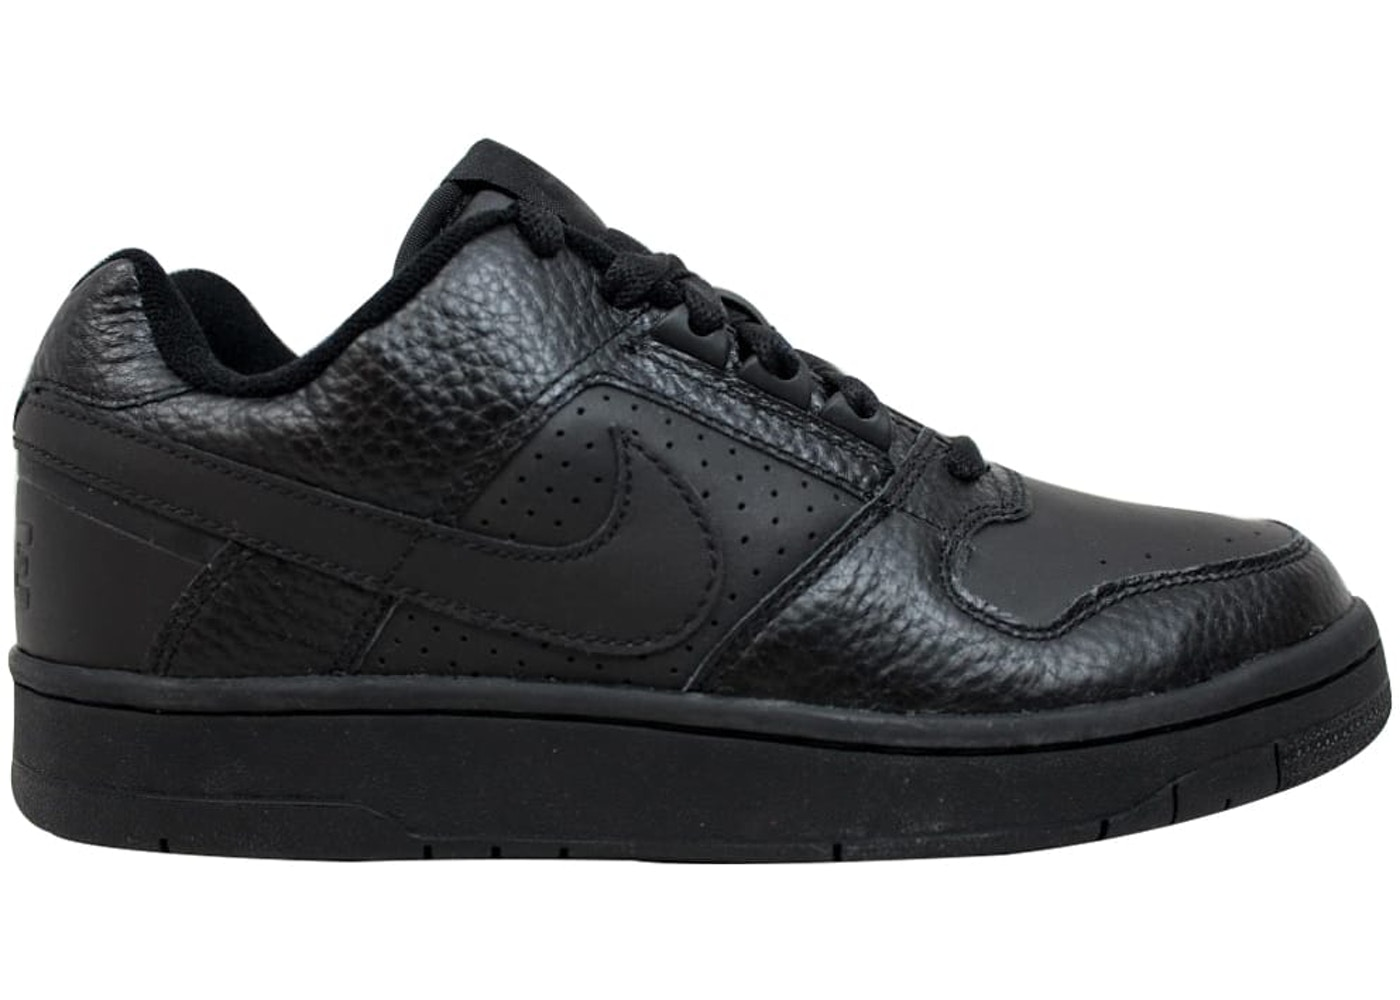 low priced 99ab1 0671d Nike Delta Force Low SI BlackBlack - 313729-001